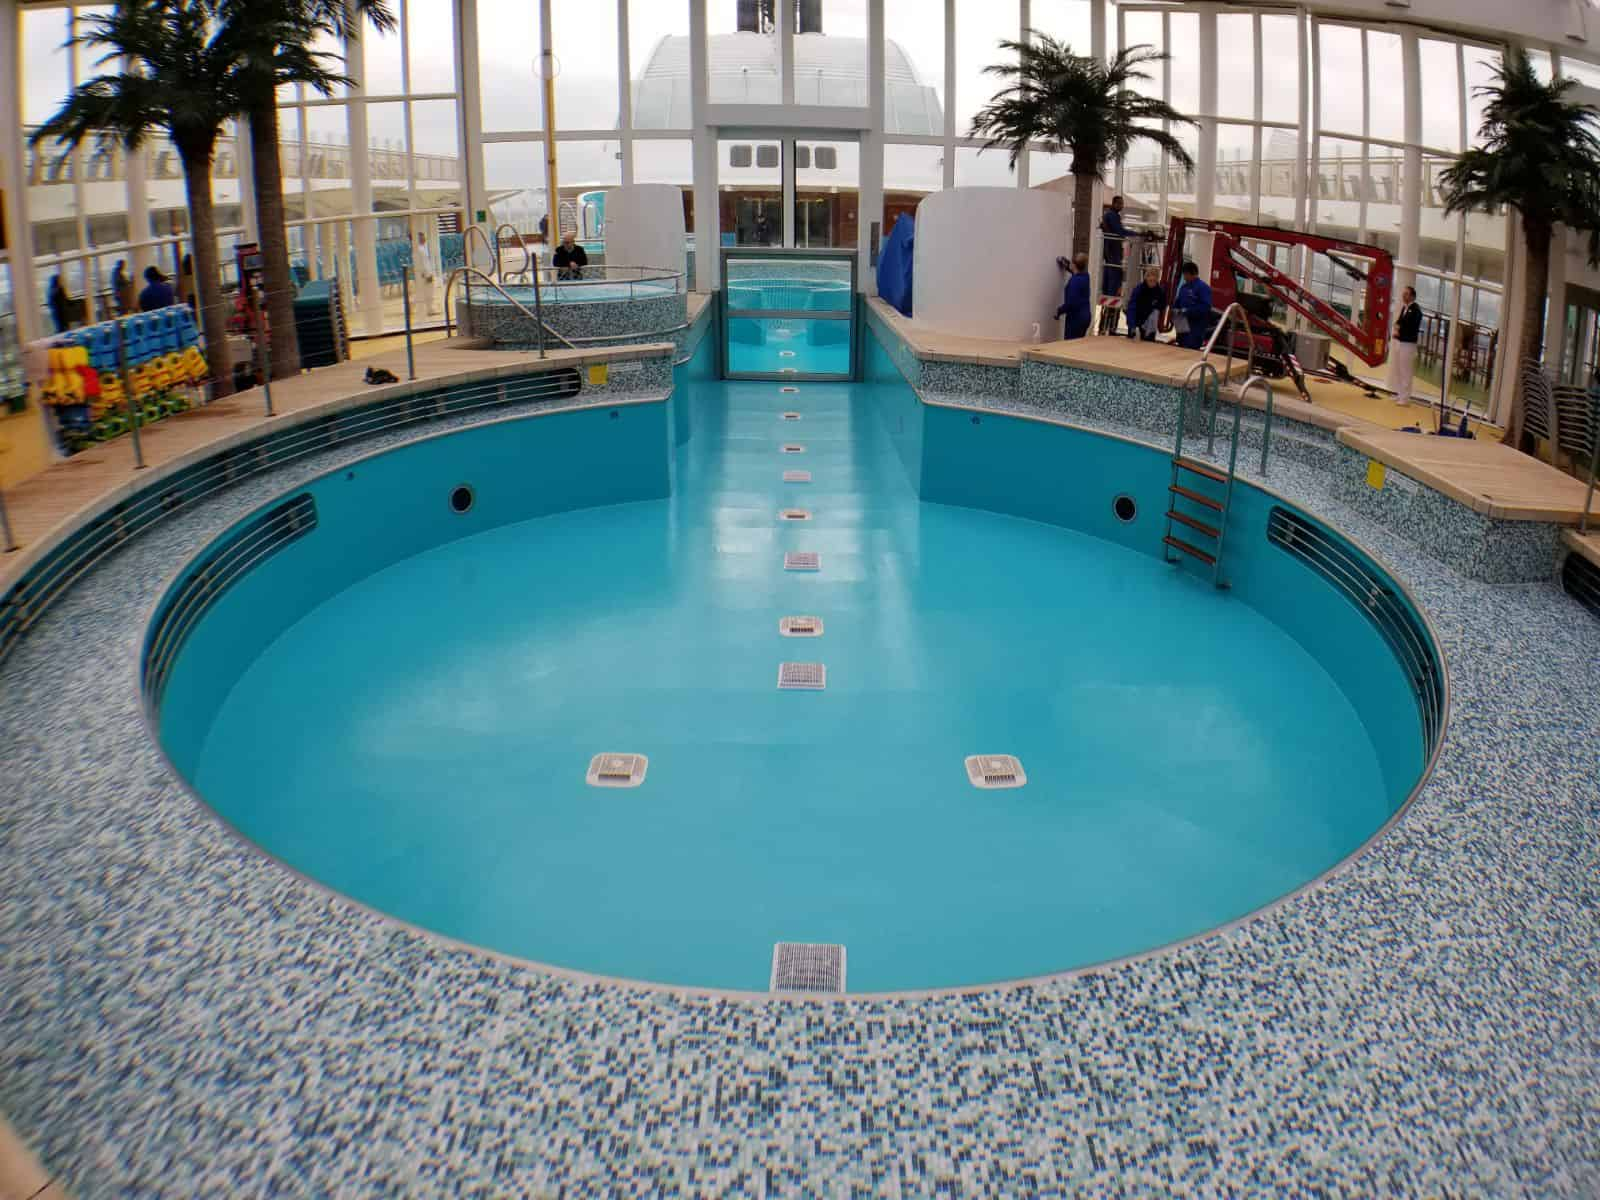 Circular ship swimming pool painted in light blue